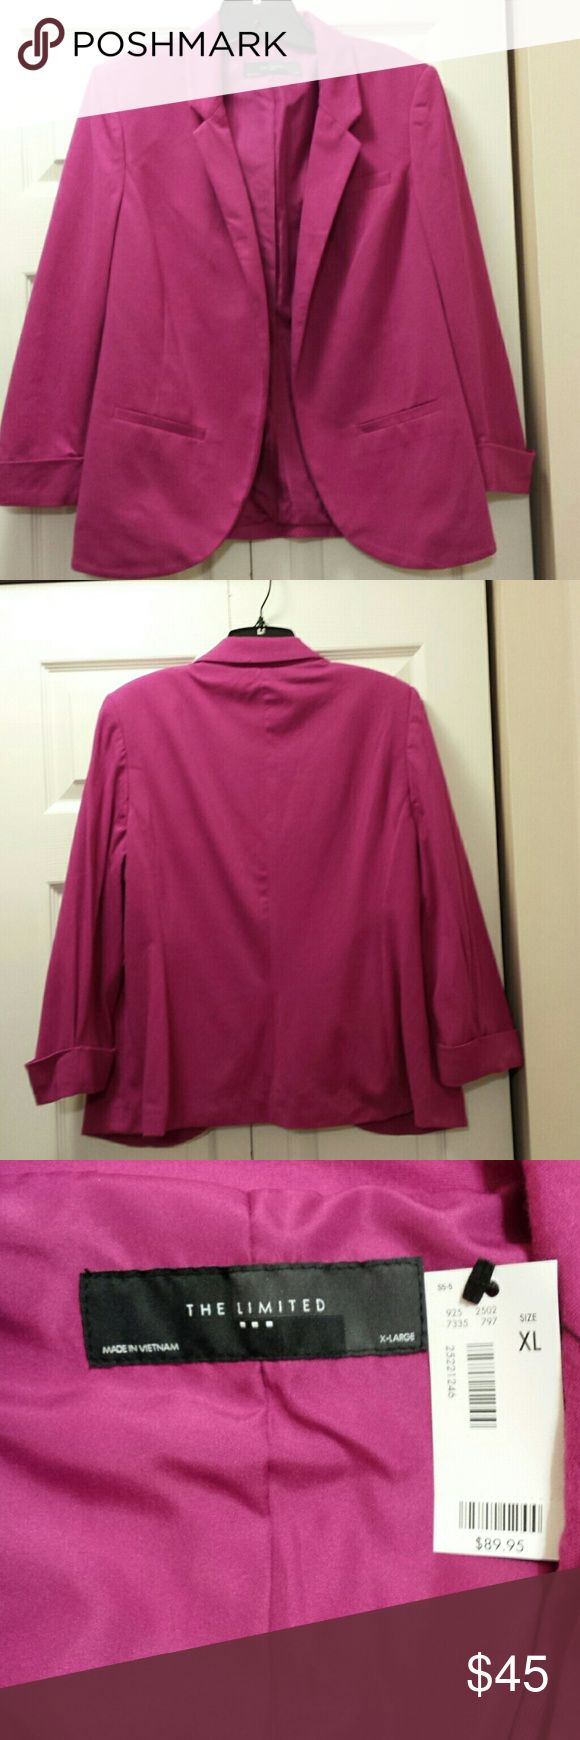 The Limited hot pink blazer Brand new with tags. Gorgeous style.  Fully lined. Beautiful color. The limited  Jackets & Coats Blazers